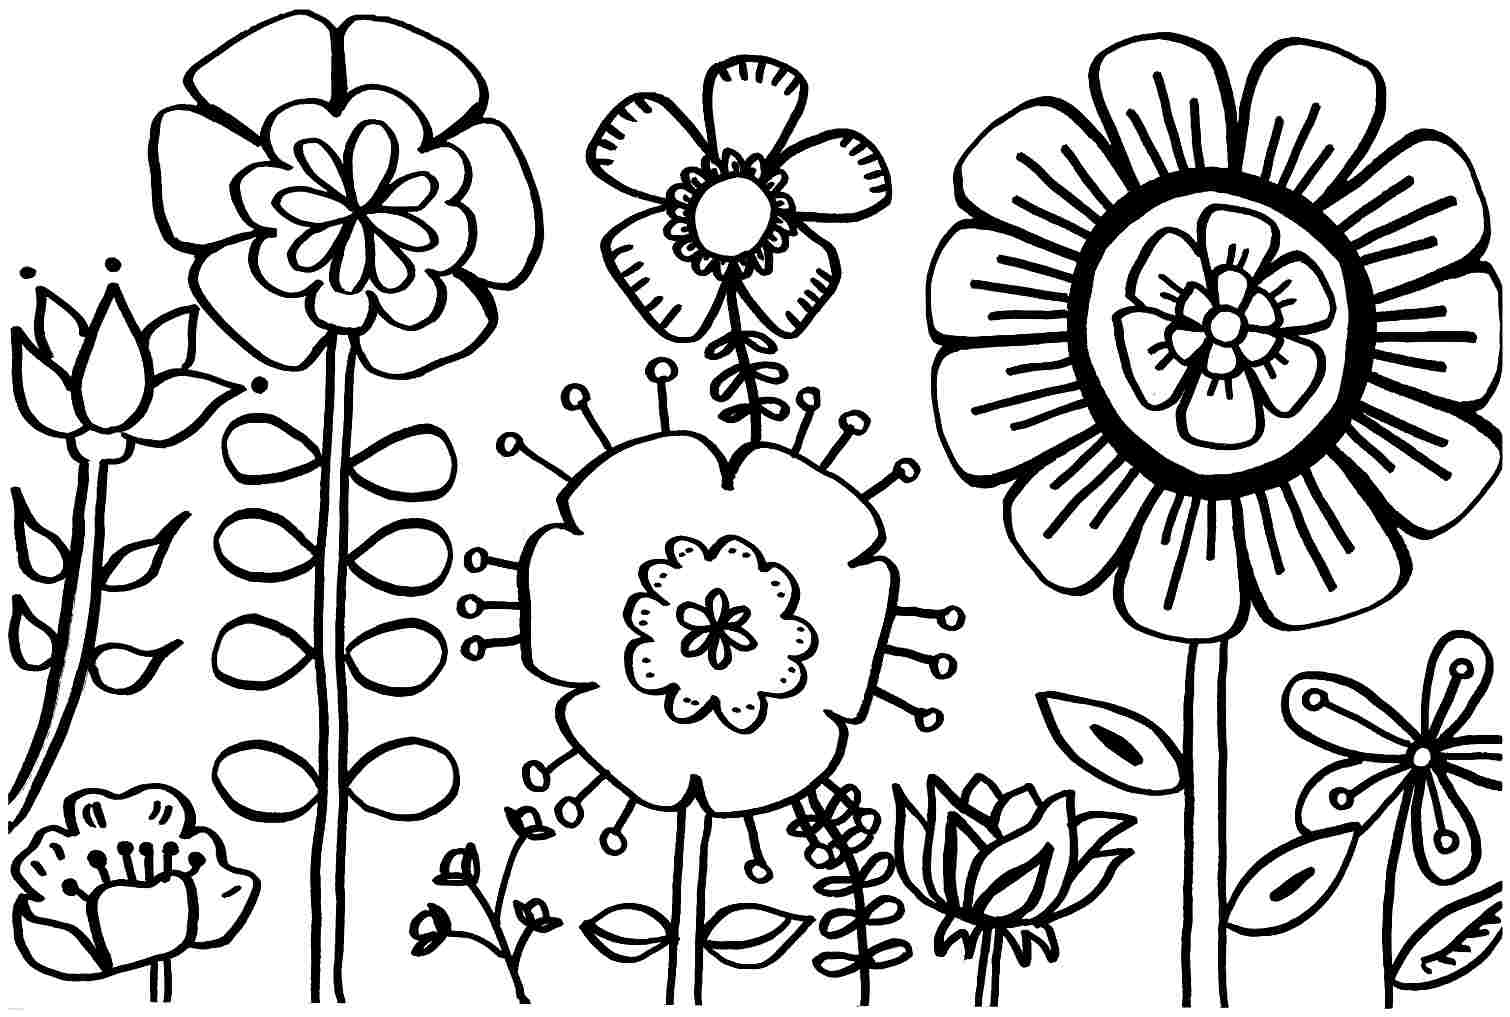 Coloring Pages : Fabulous Spring Flower Coloring Pages Flowers To - Free Printable Flower Coloring Pages